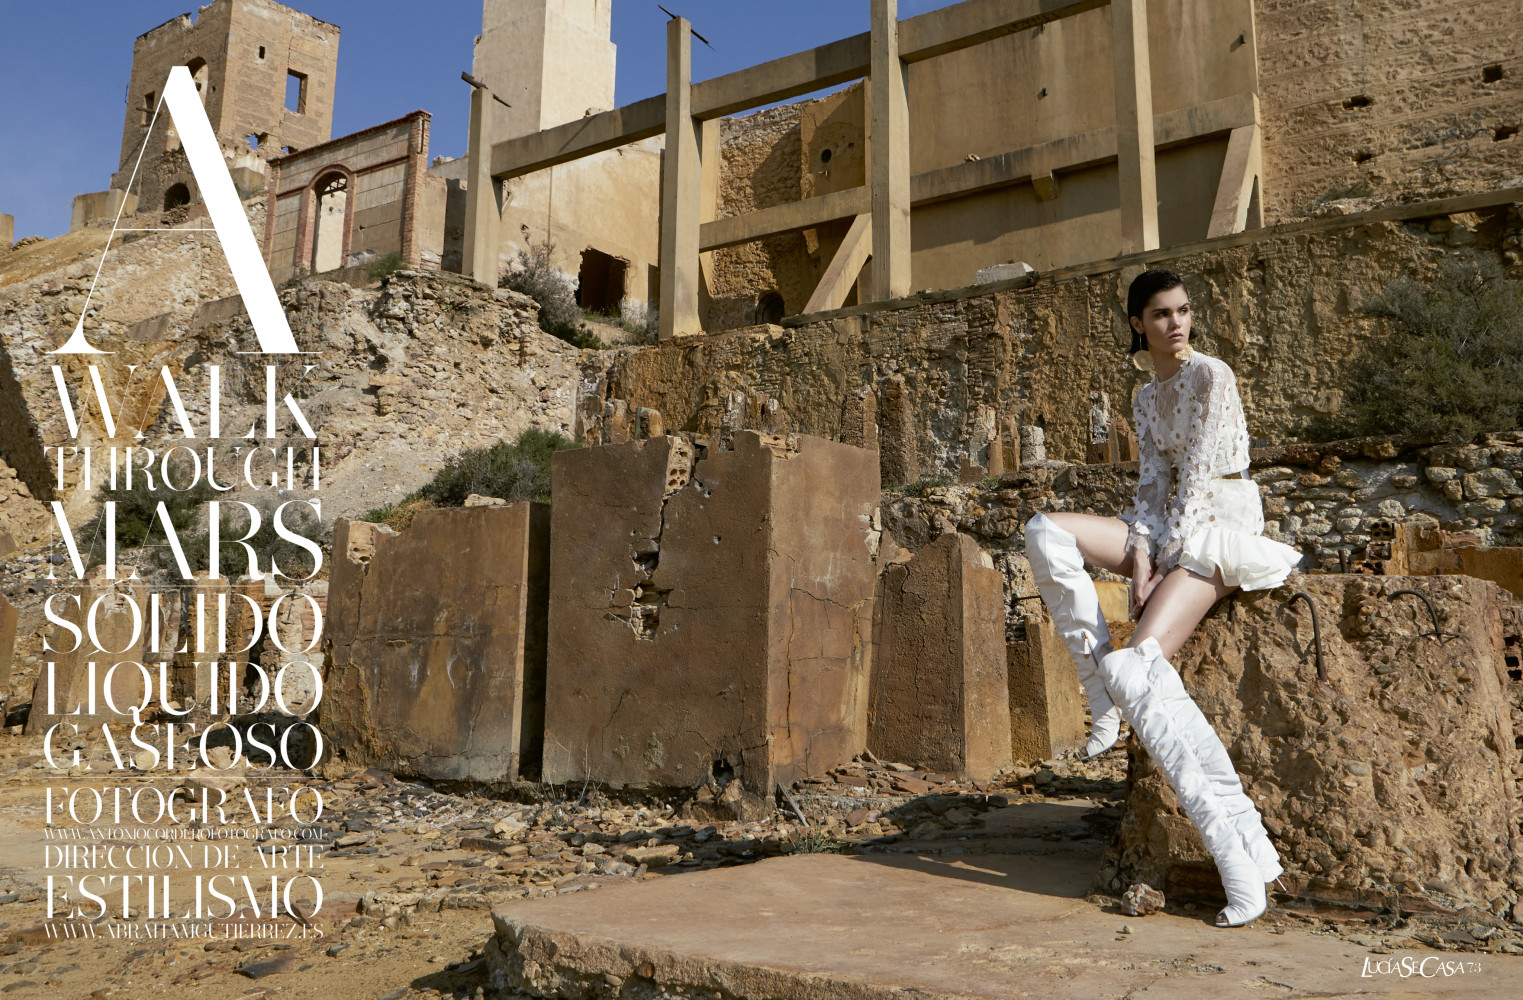 MARIA PARR for Lucia se casa magazine by Antonio Cordero